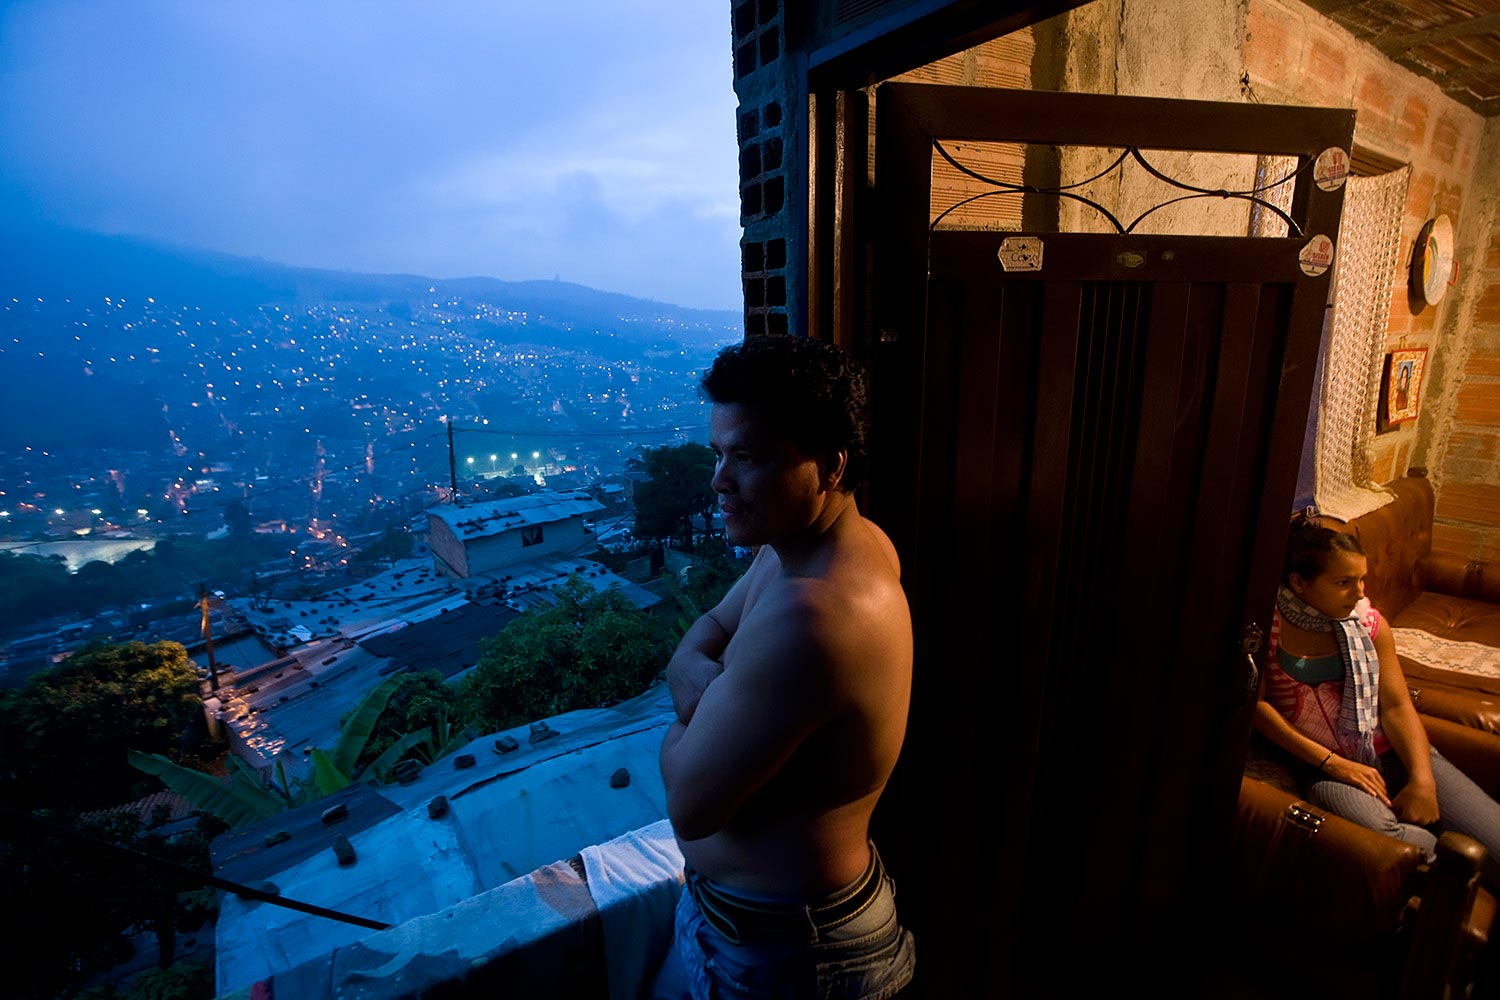 NIGHT IS FALLING A displaced man looks at the view of 'Esfuerzos De Paz #1' neighborhood in Medellin as night falls. The nighttime is extremely dangerous in neighborhoods populated by displaced families being the preferred time for guerrilla or the paramilitary militants to operate.